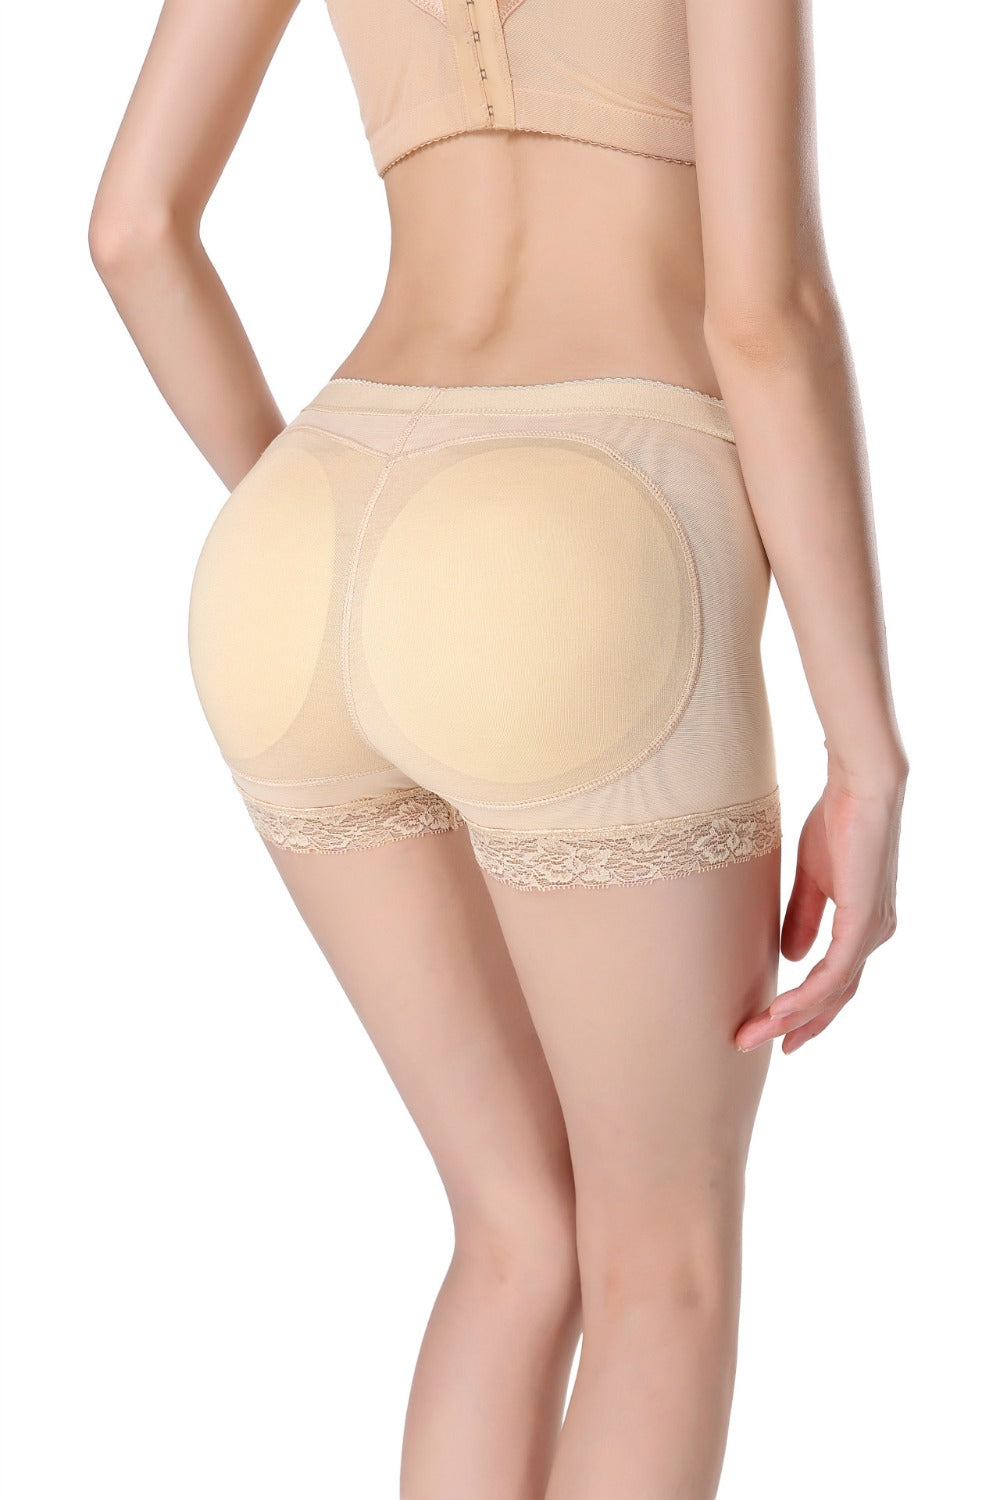 Booty Lifter Undergarment - Oh My Gagdet